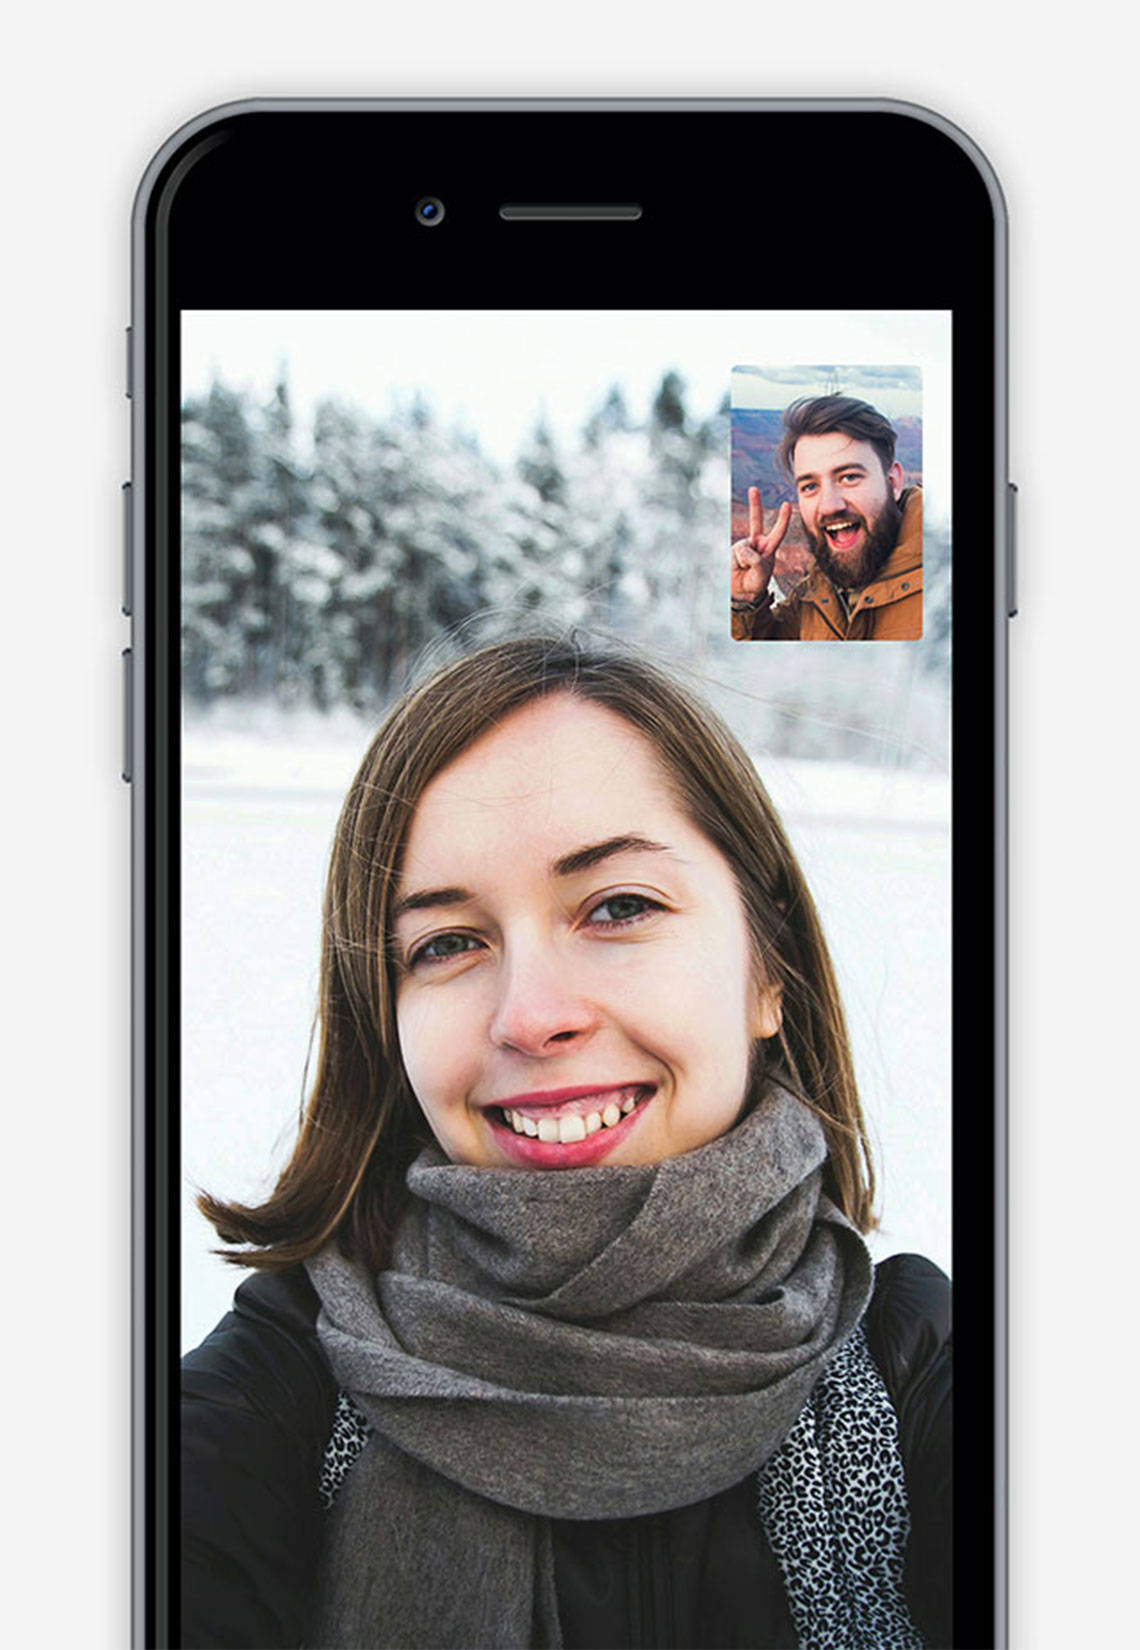 Video calls are clear with servers positions around the world to provide a stable connection.